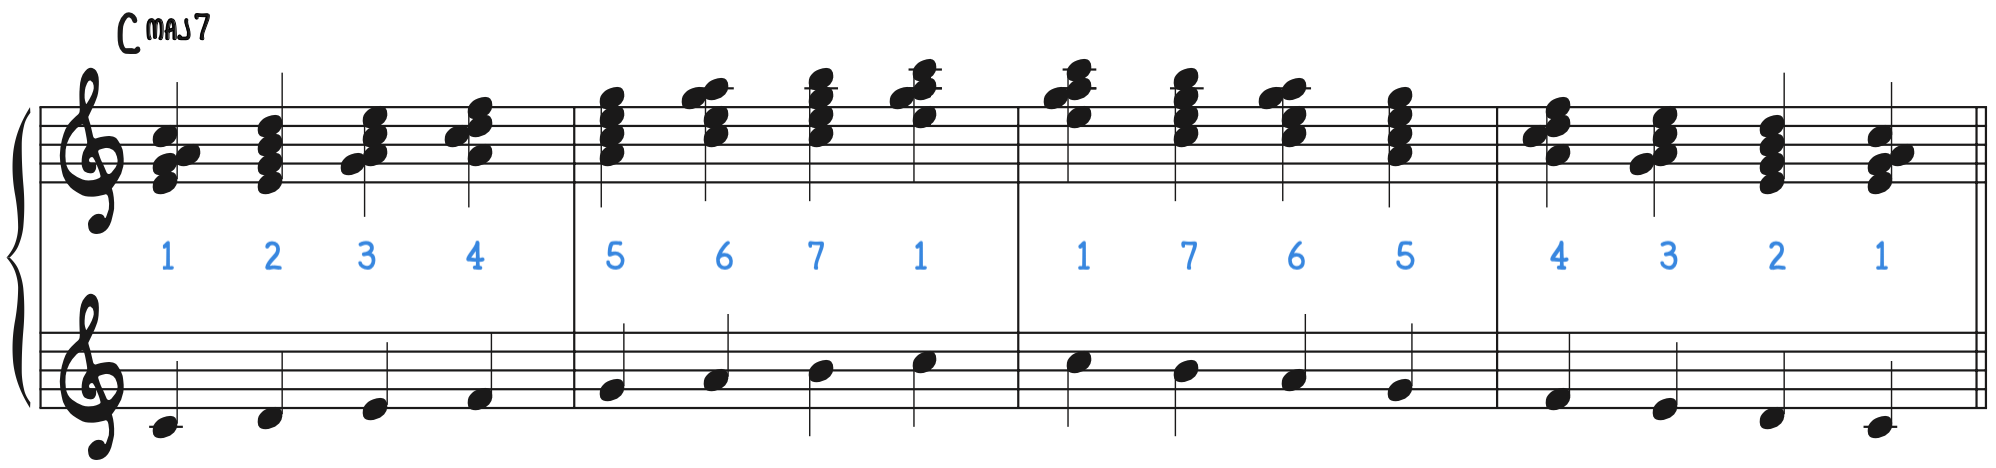 Block Chords Practice Suggestion 1 C Major Scale George Shearing Locked Hands Locked-hands